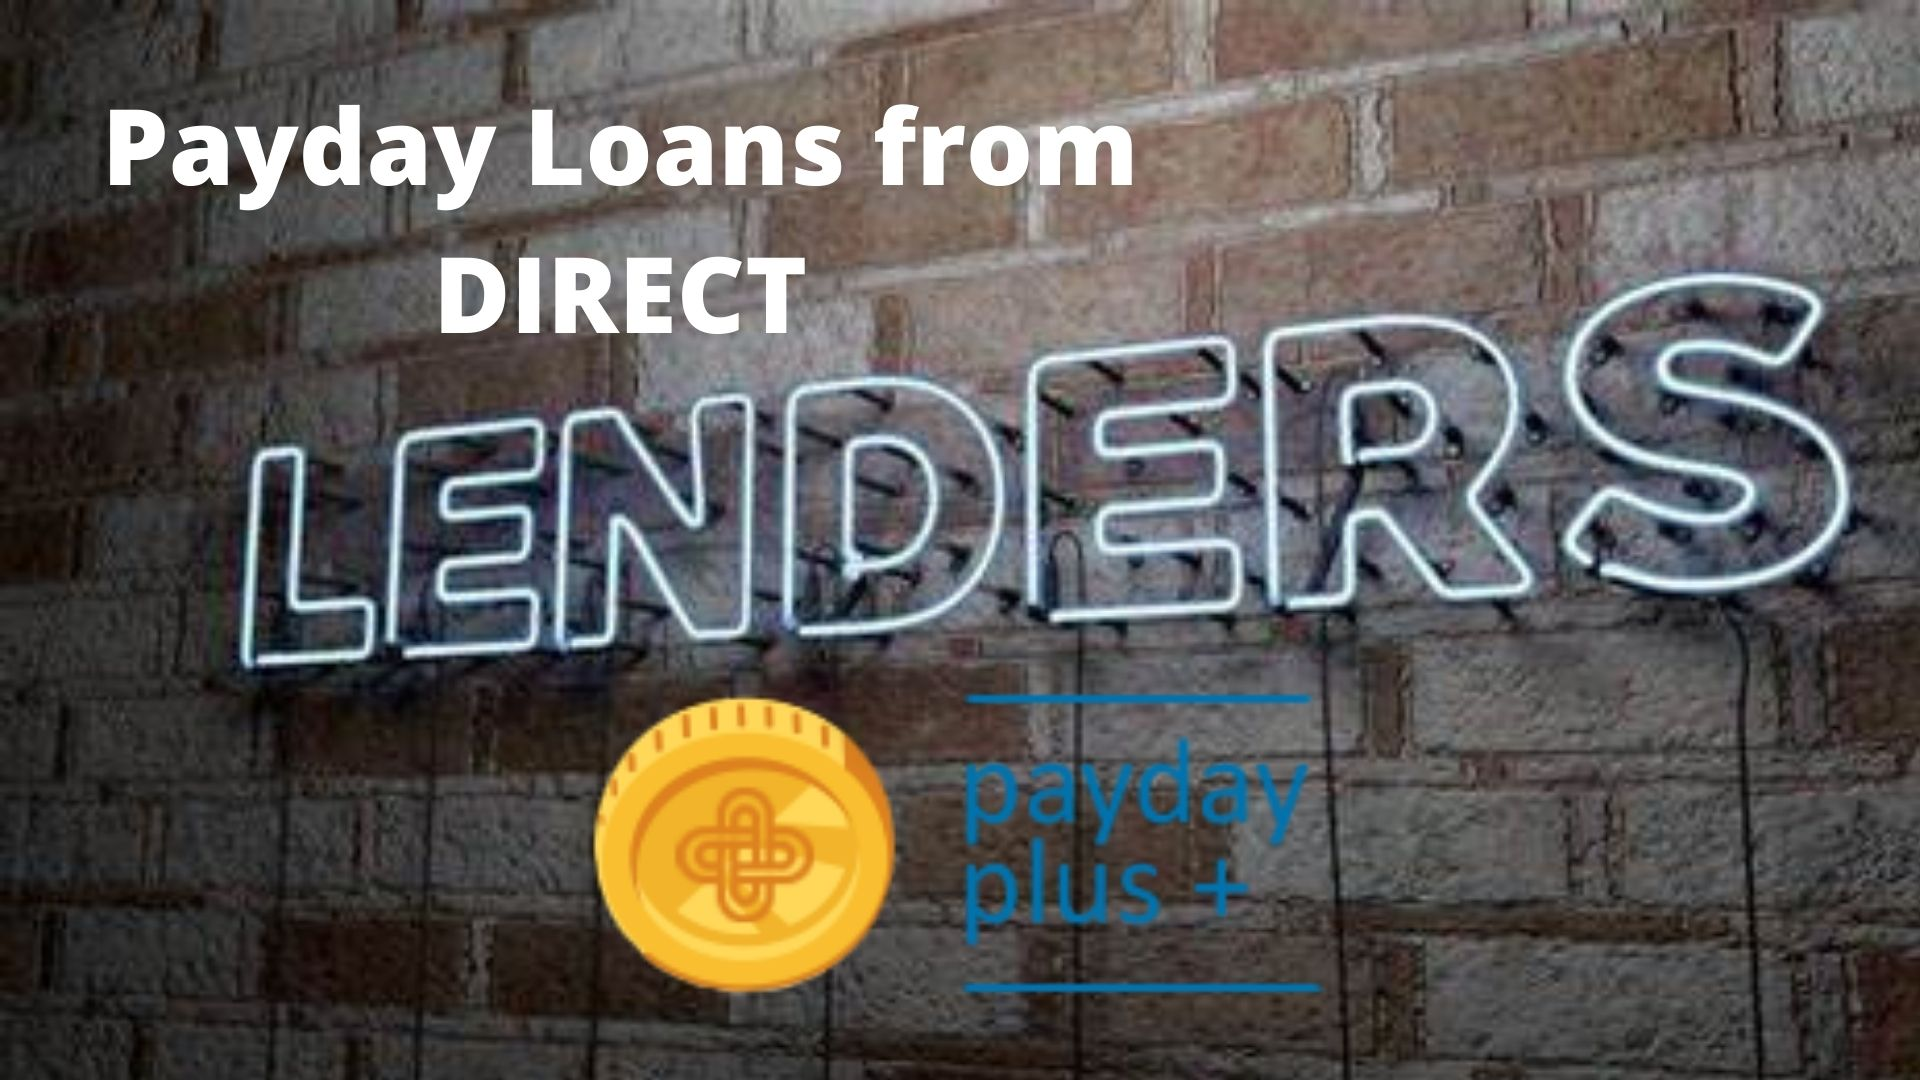 Payday Loans from Direct Lenders